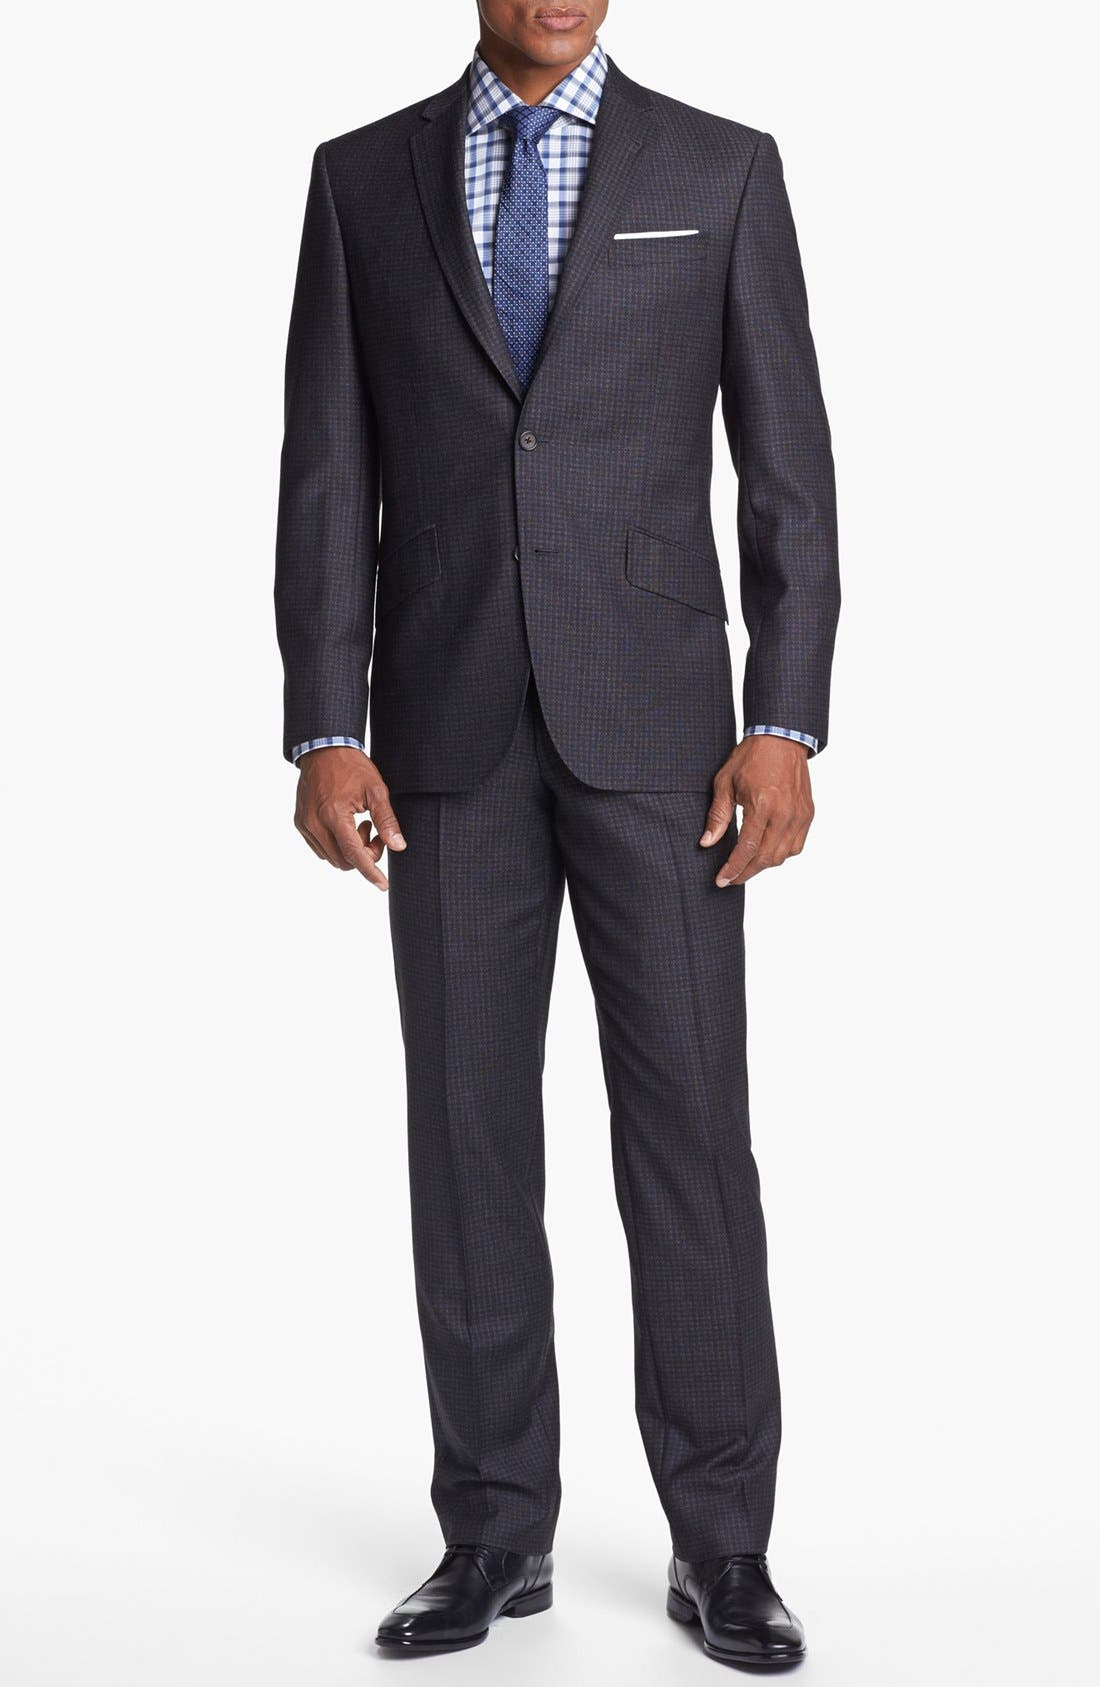 Main Image - Ted Baker London 'Jones' Trim Fit Check Suit (Online Only)